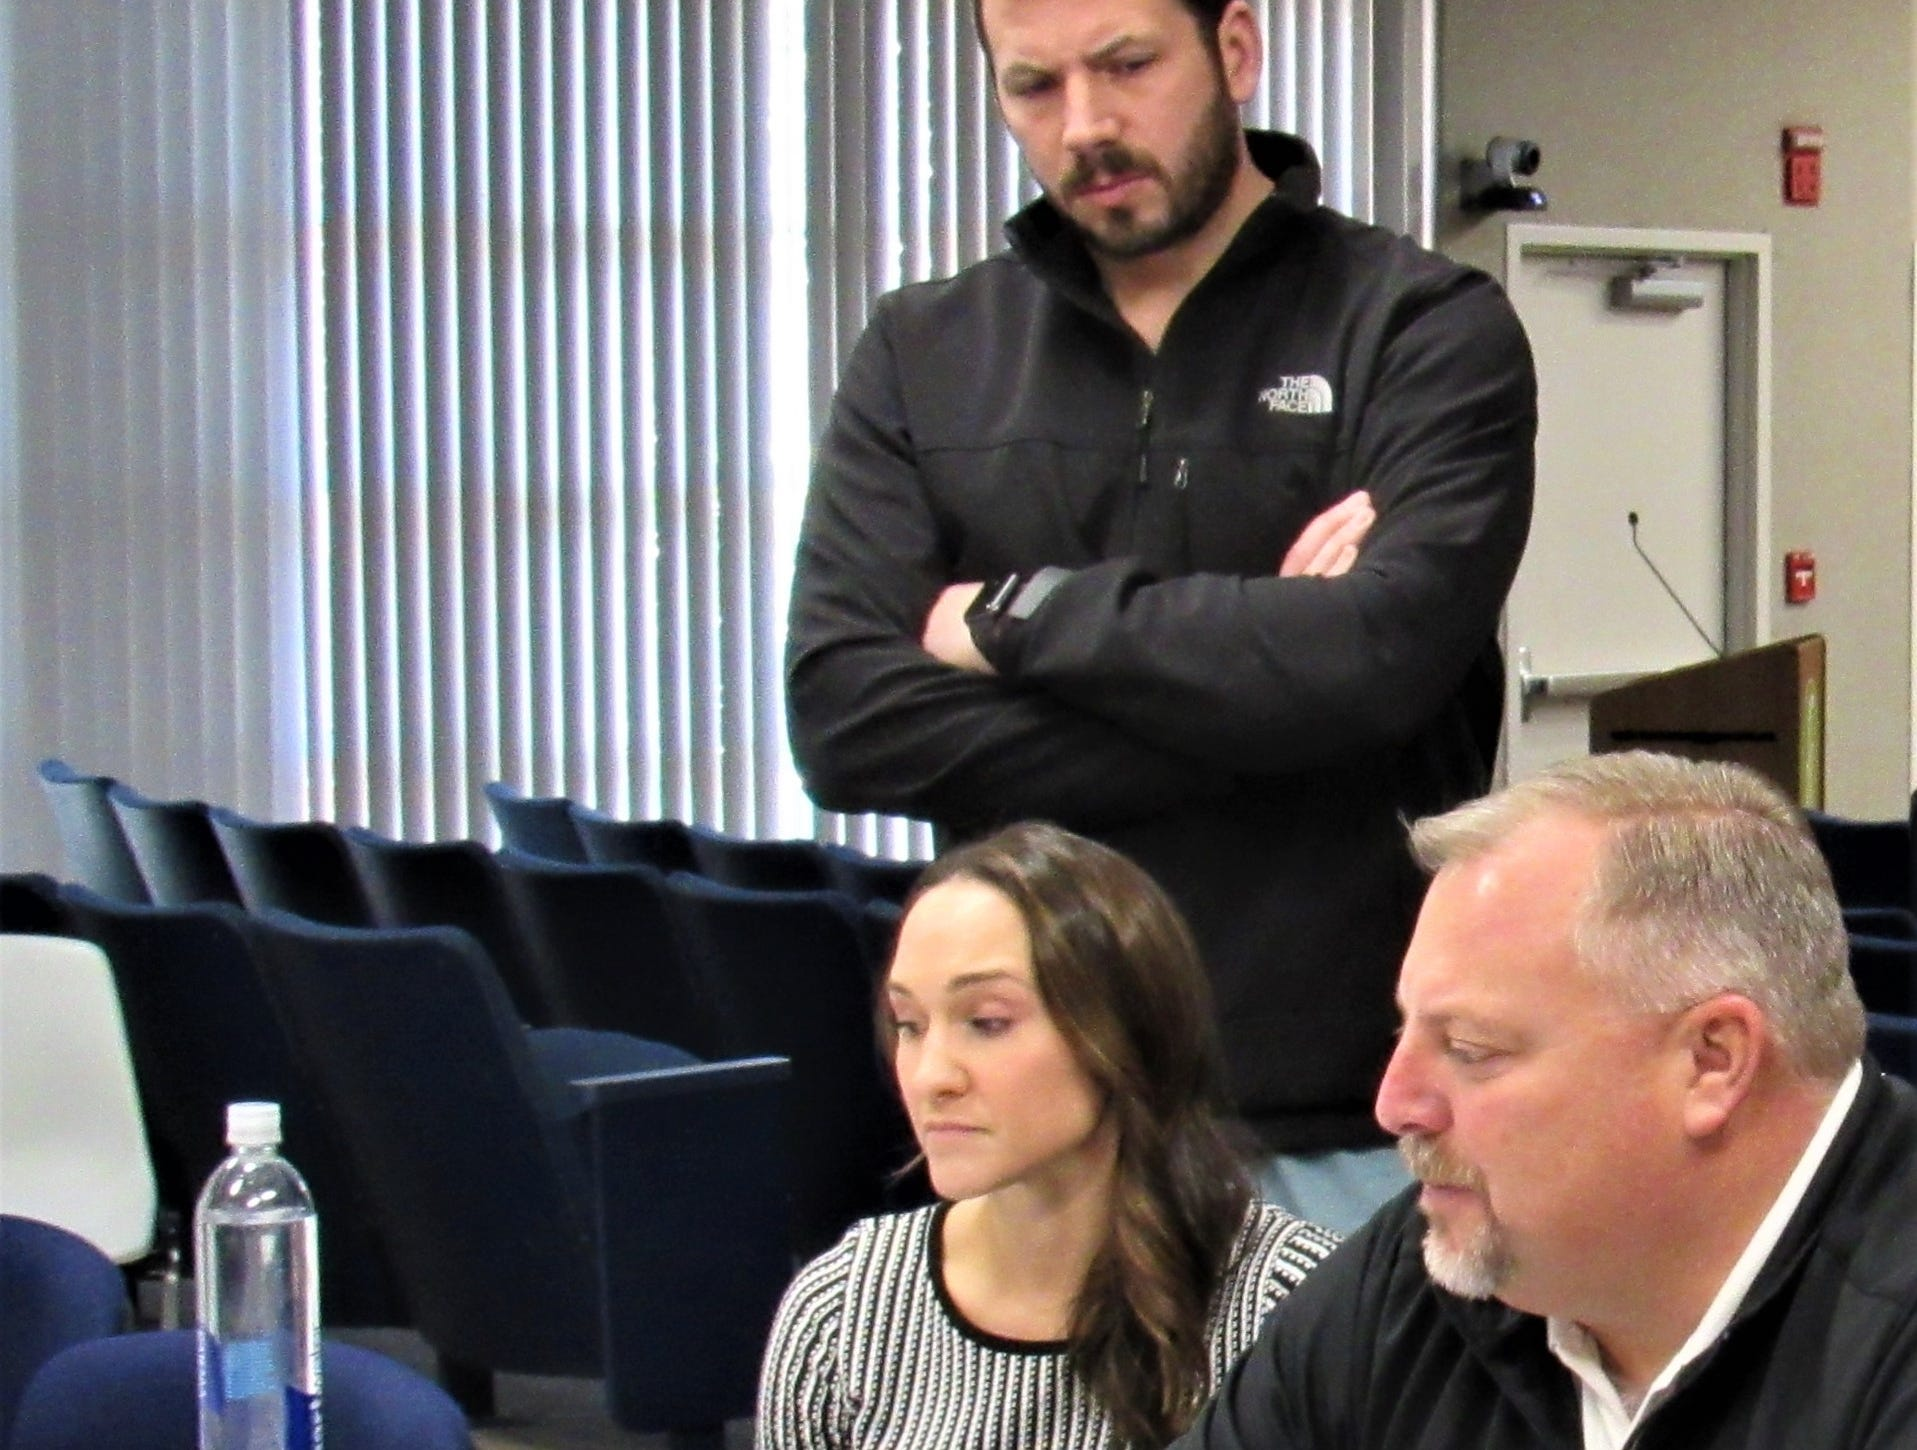 Alderman Drew Burnette looks over plans presented by architect Samia Coker and Ingles construction project manager Preston Kendall during the staff/developer meeting at Town Hall on March 5.